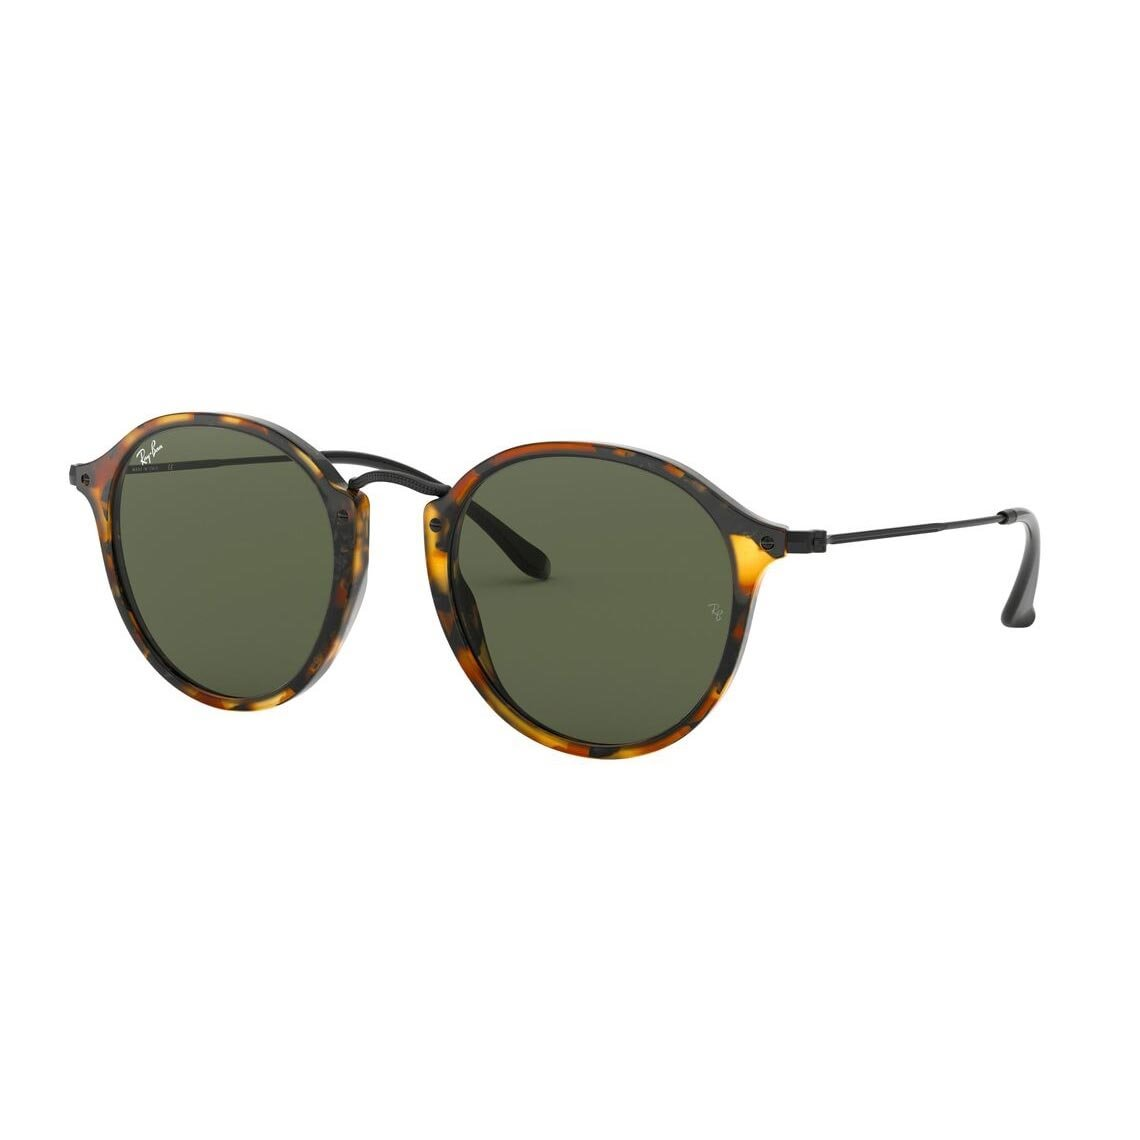 Ray-Ban Round fleck RB2447 1157 49